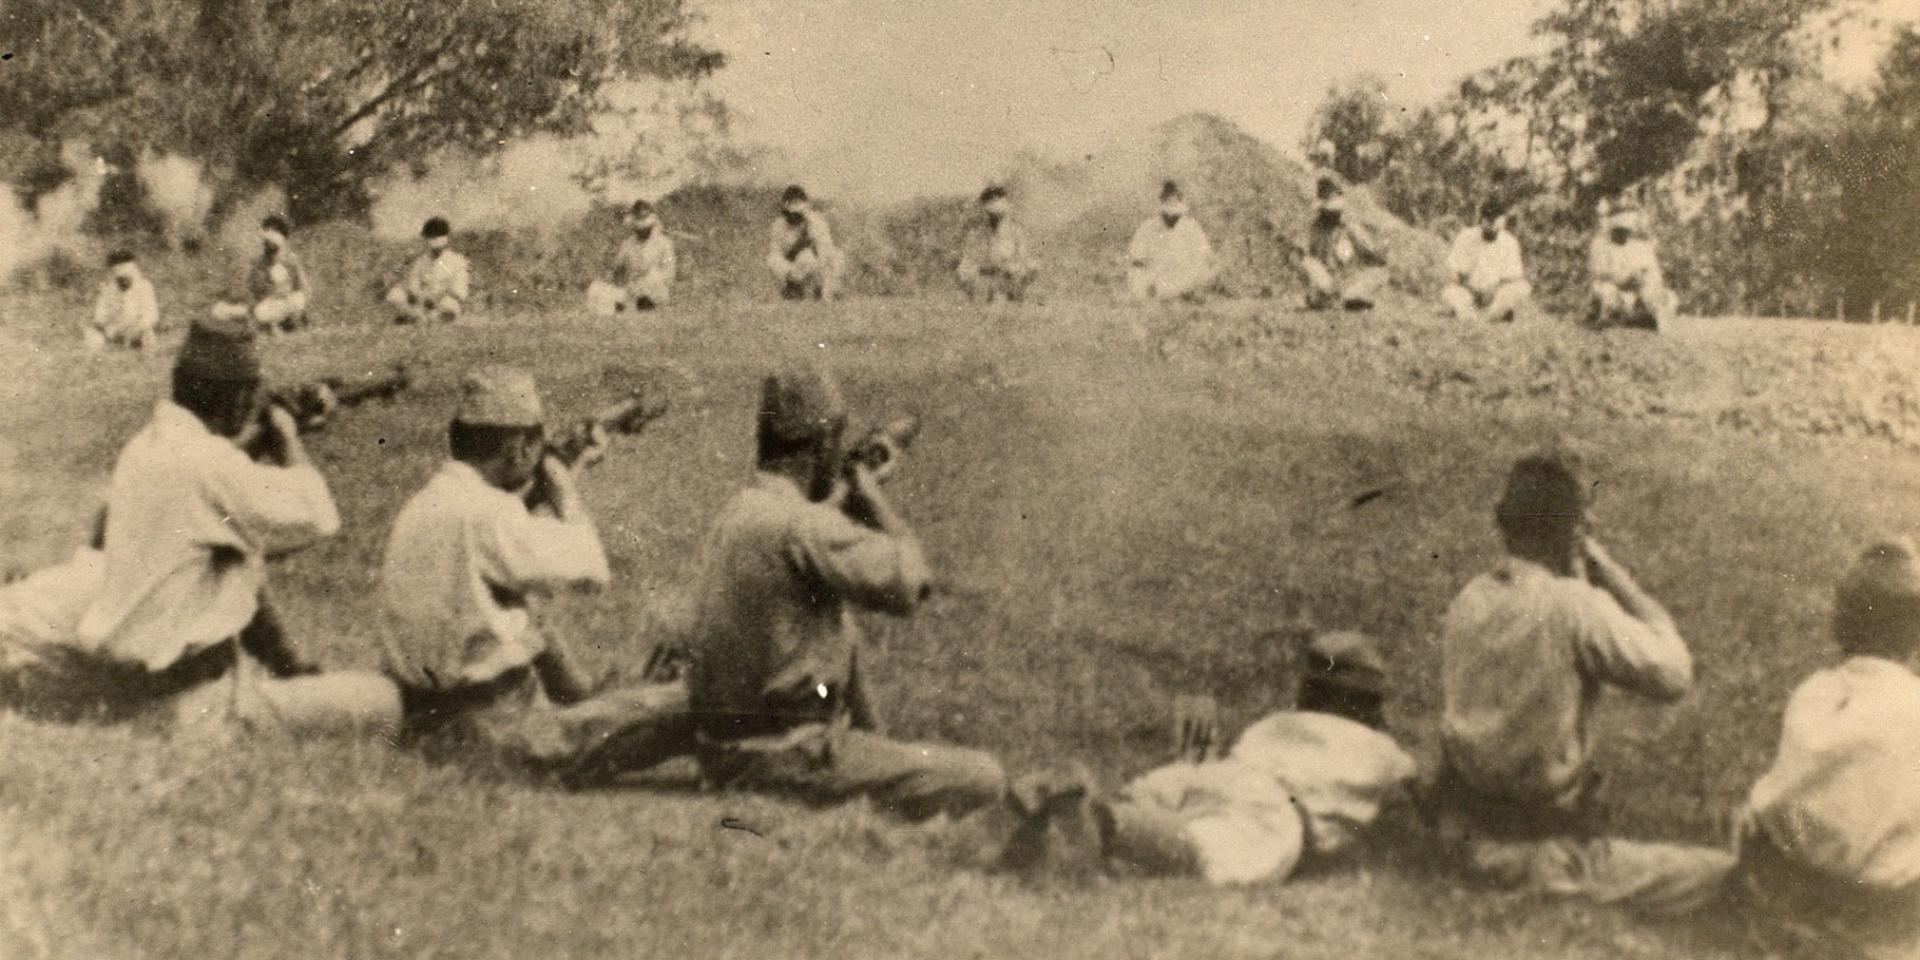 Japanese soldiers executing Indian prisoners of war at Singapore, 1942